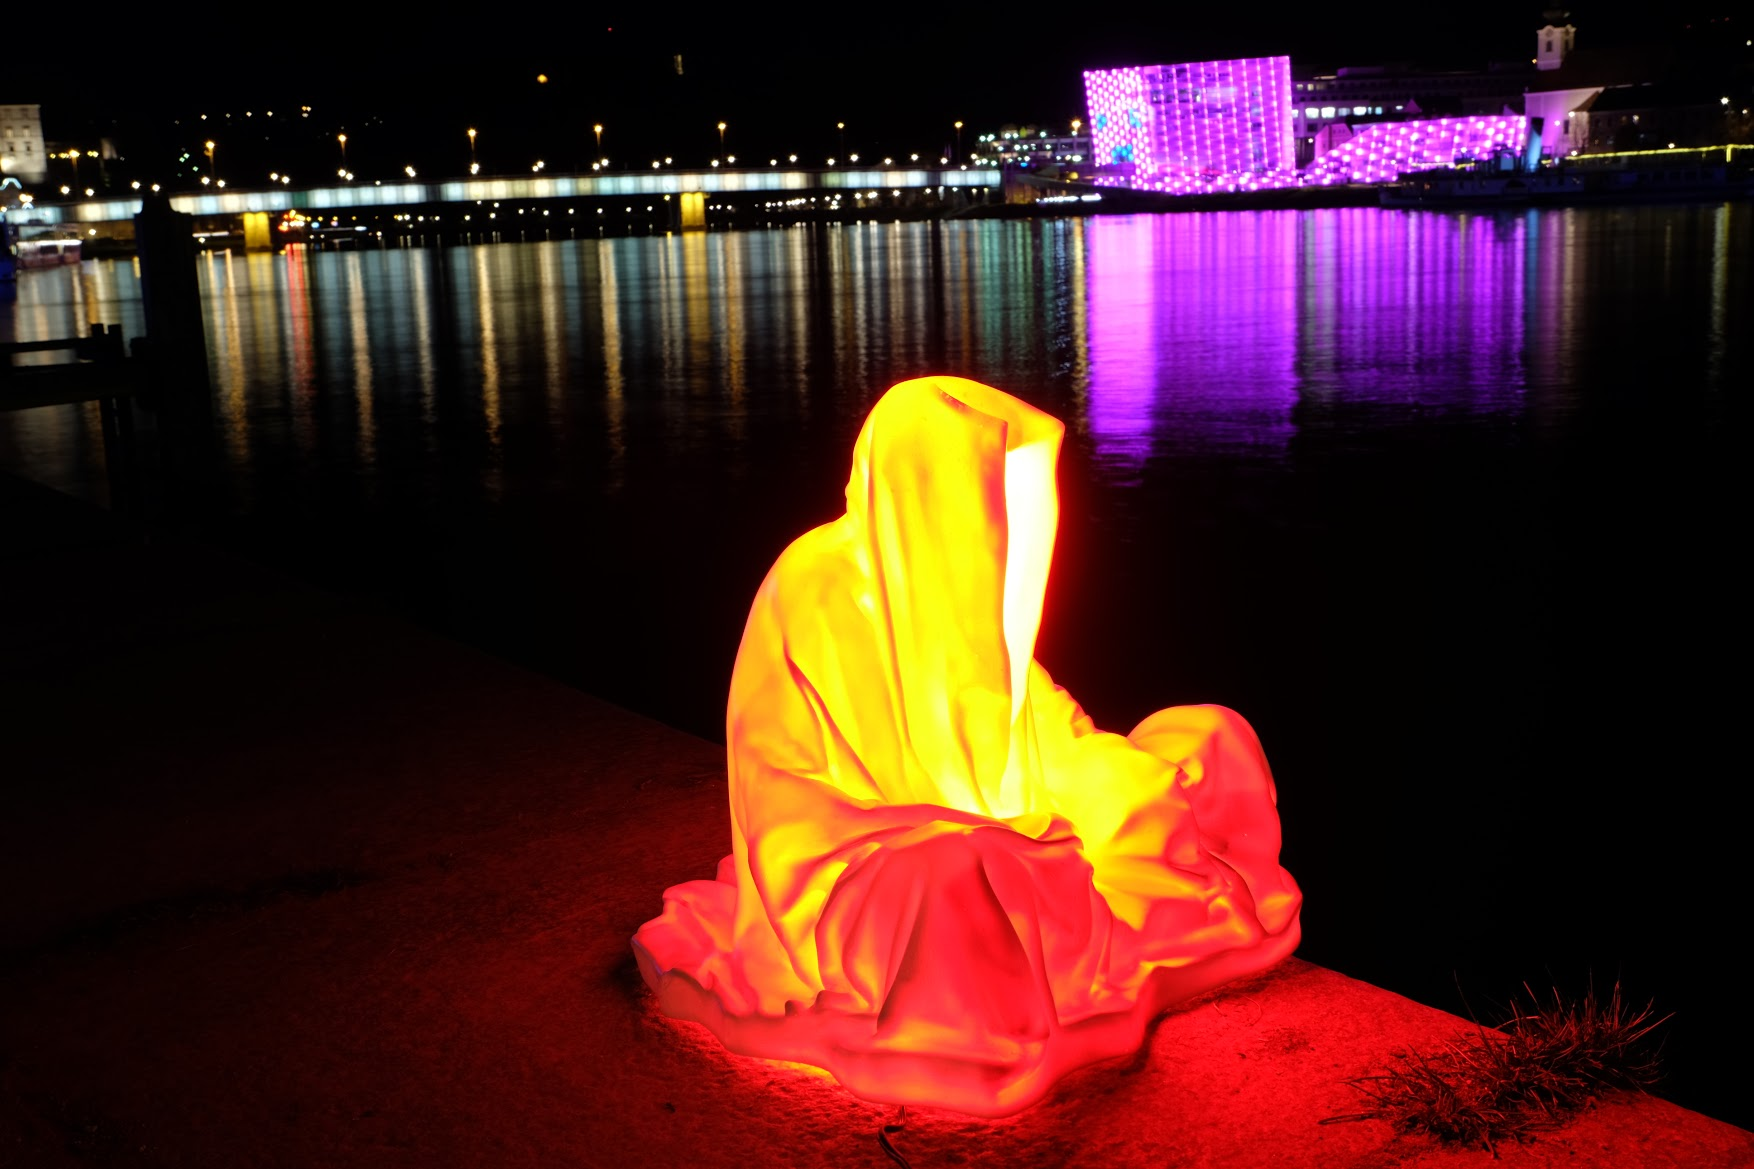 guardians of time manfred kielnhofer linz light art contemporary art sculpture statue modern design lamp light lumina 1821